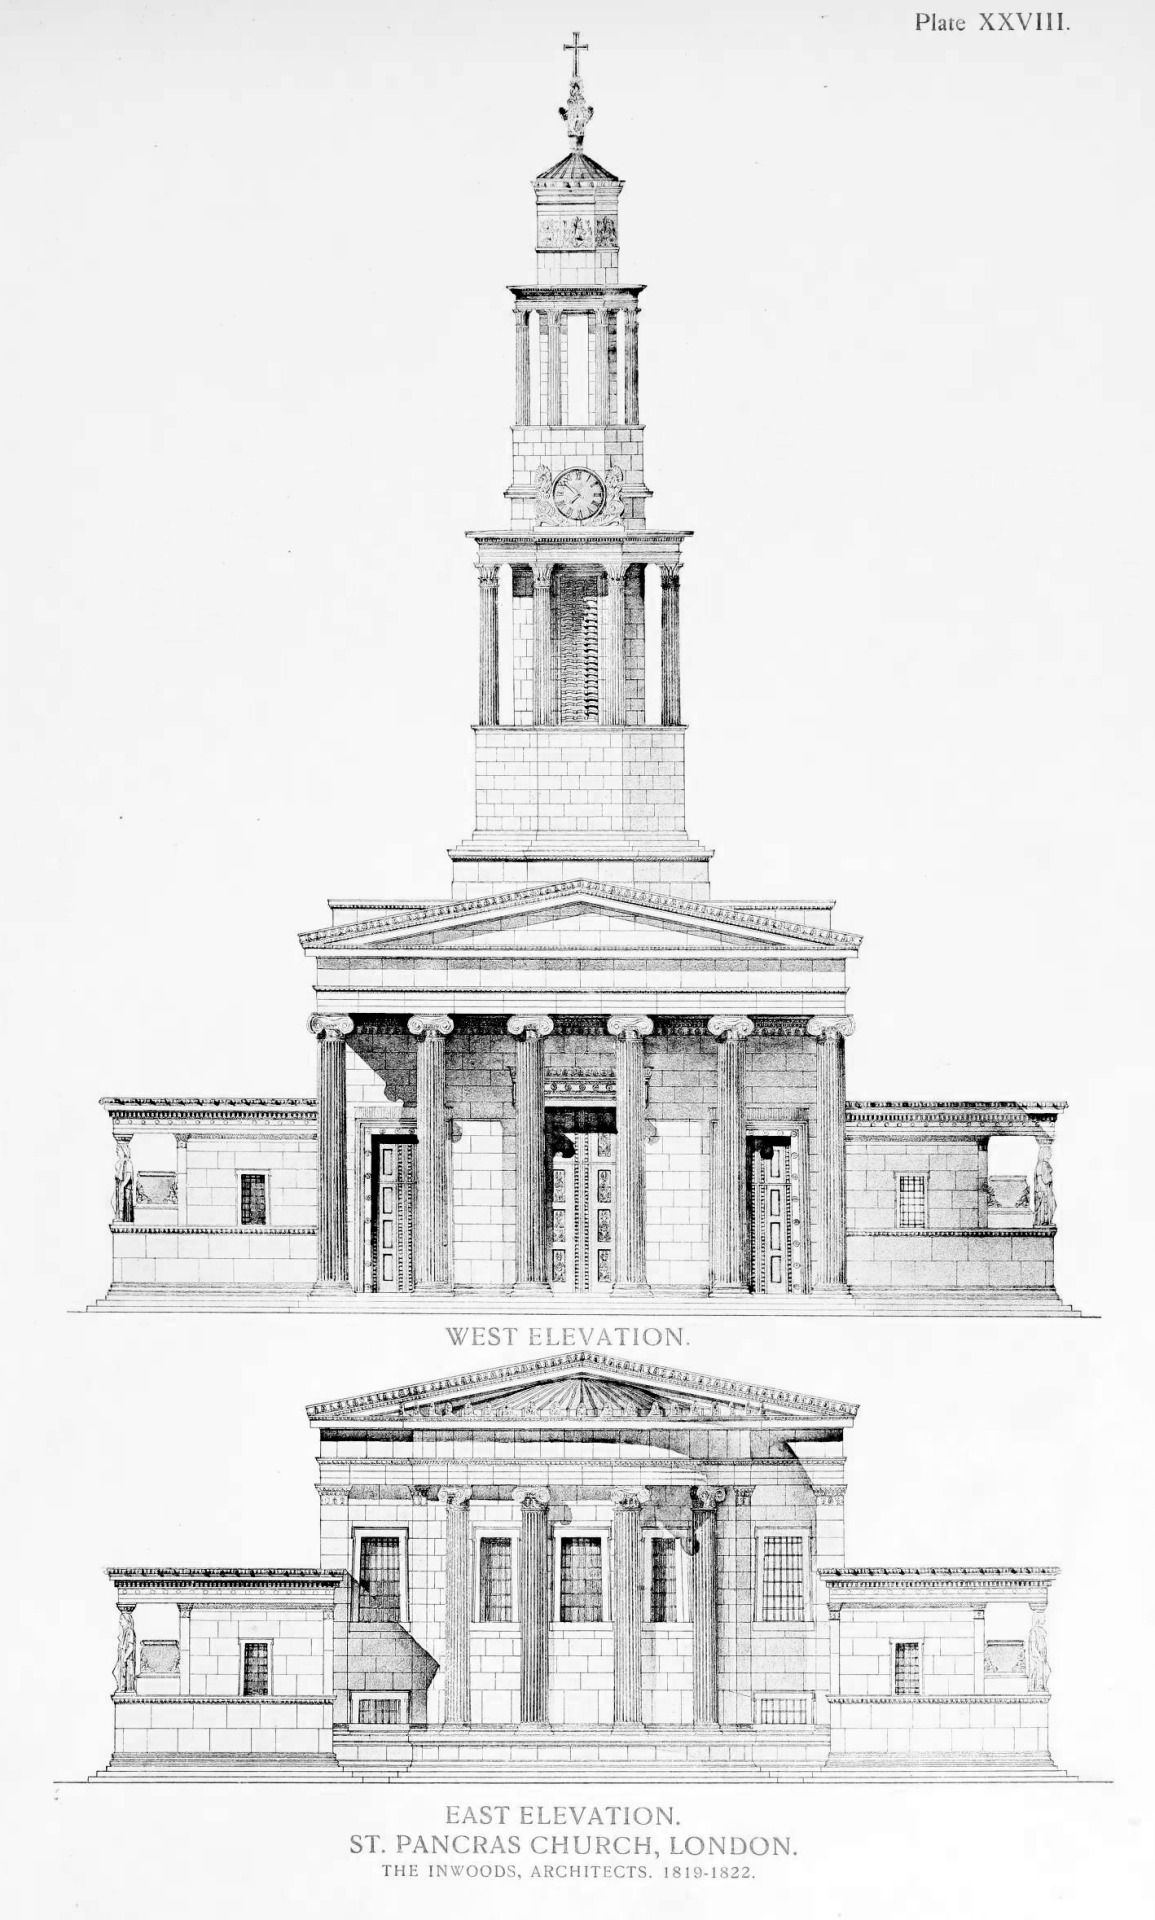 West And East Elevations Of St Pancras Church London Architecture SketchesArchitecture